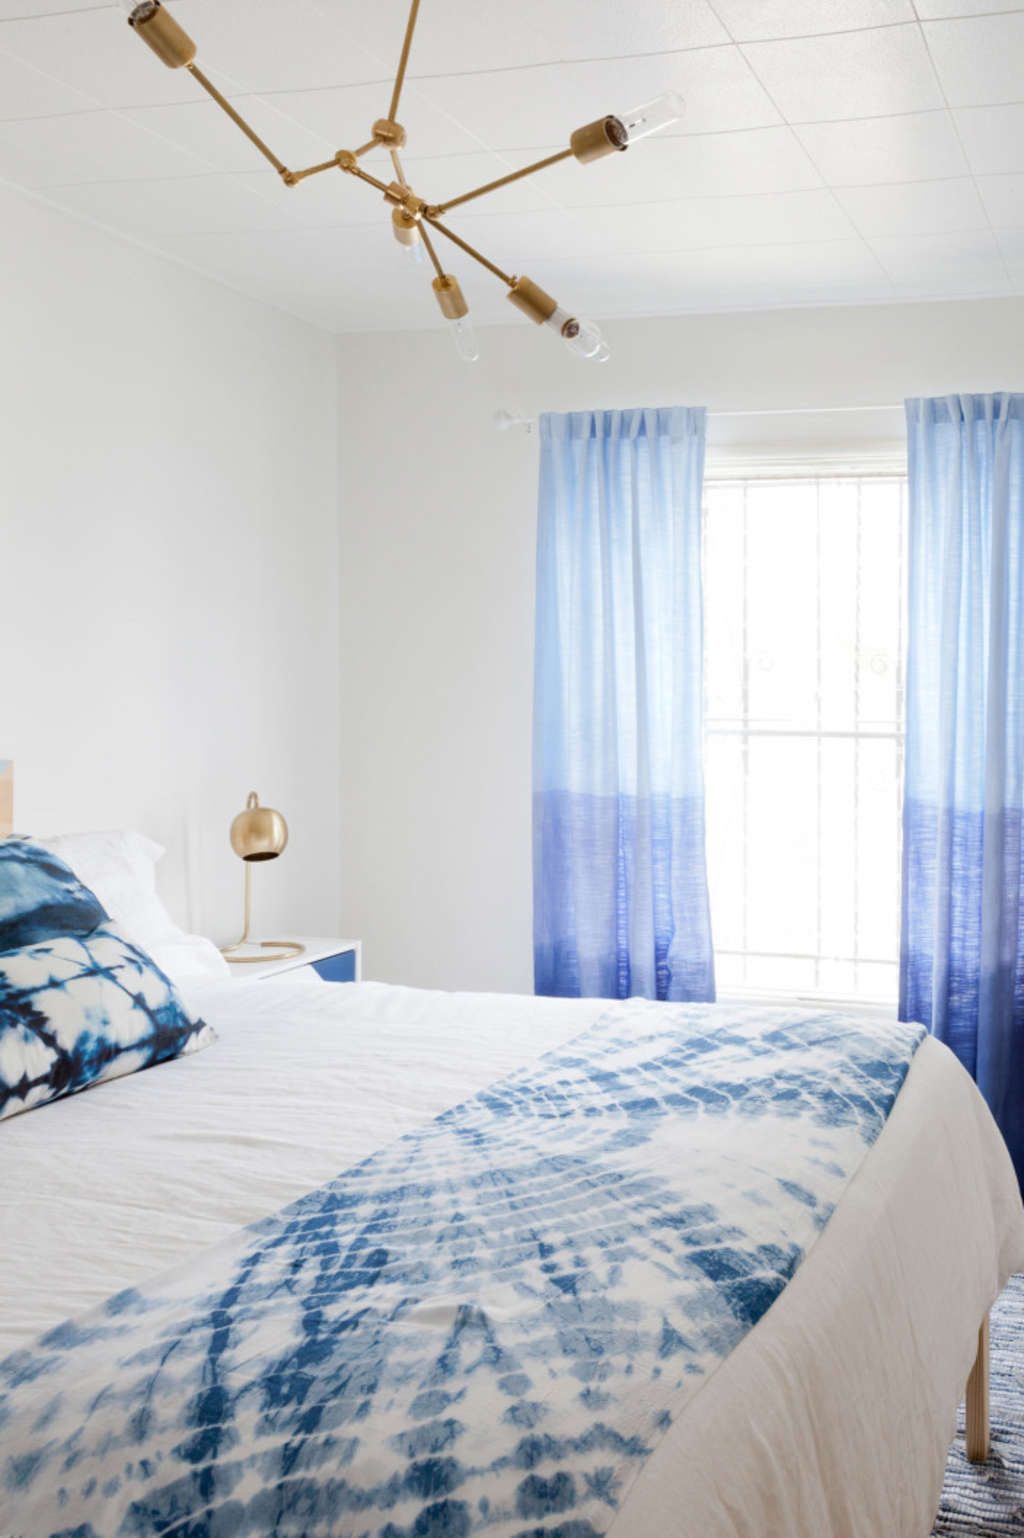 DIY Curtain Projects You Can Totally Pull Off